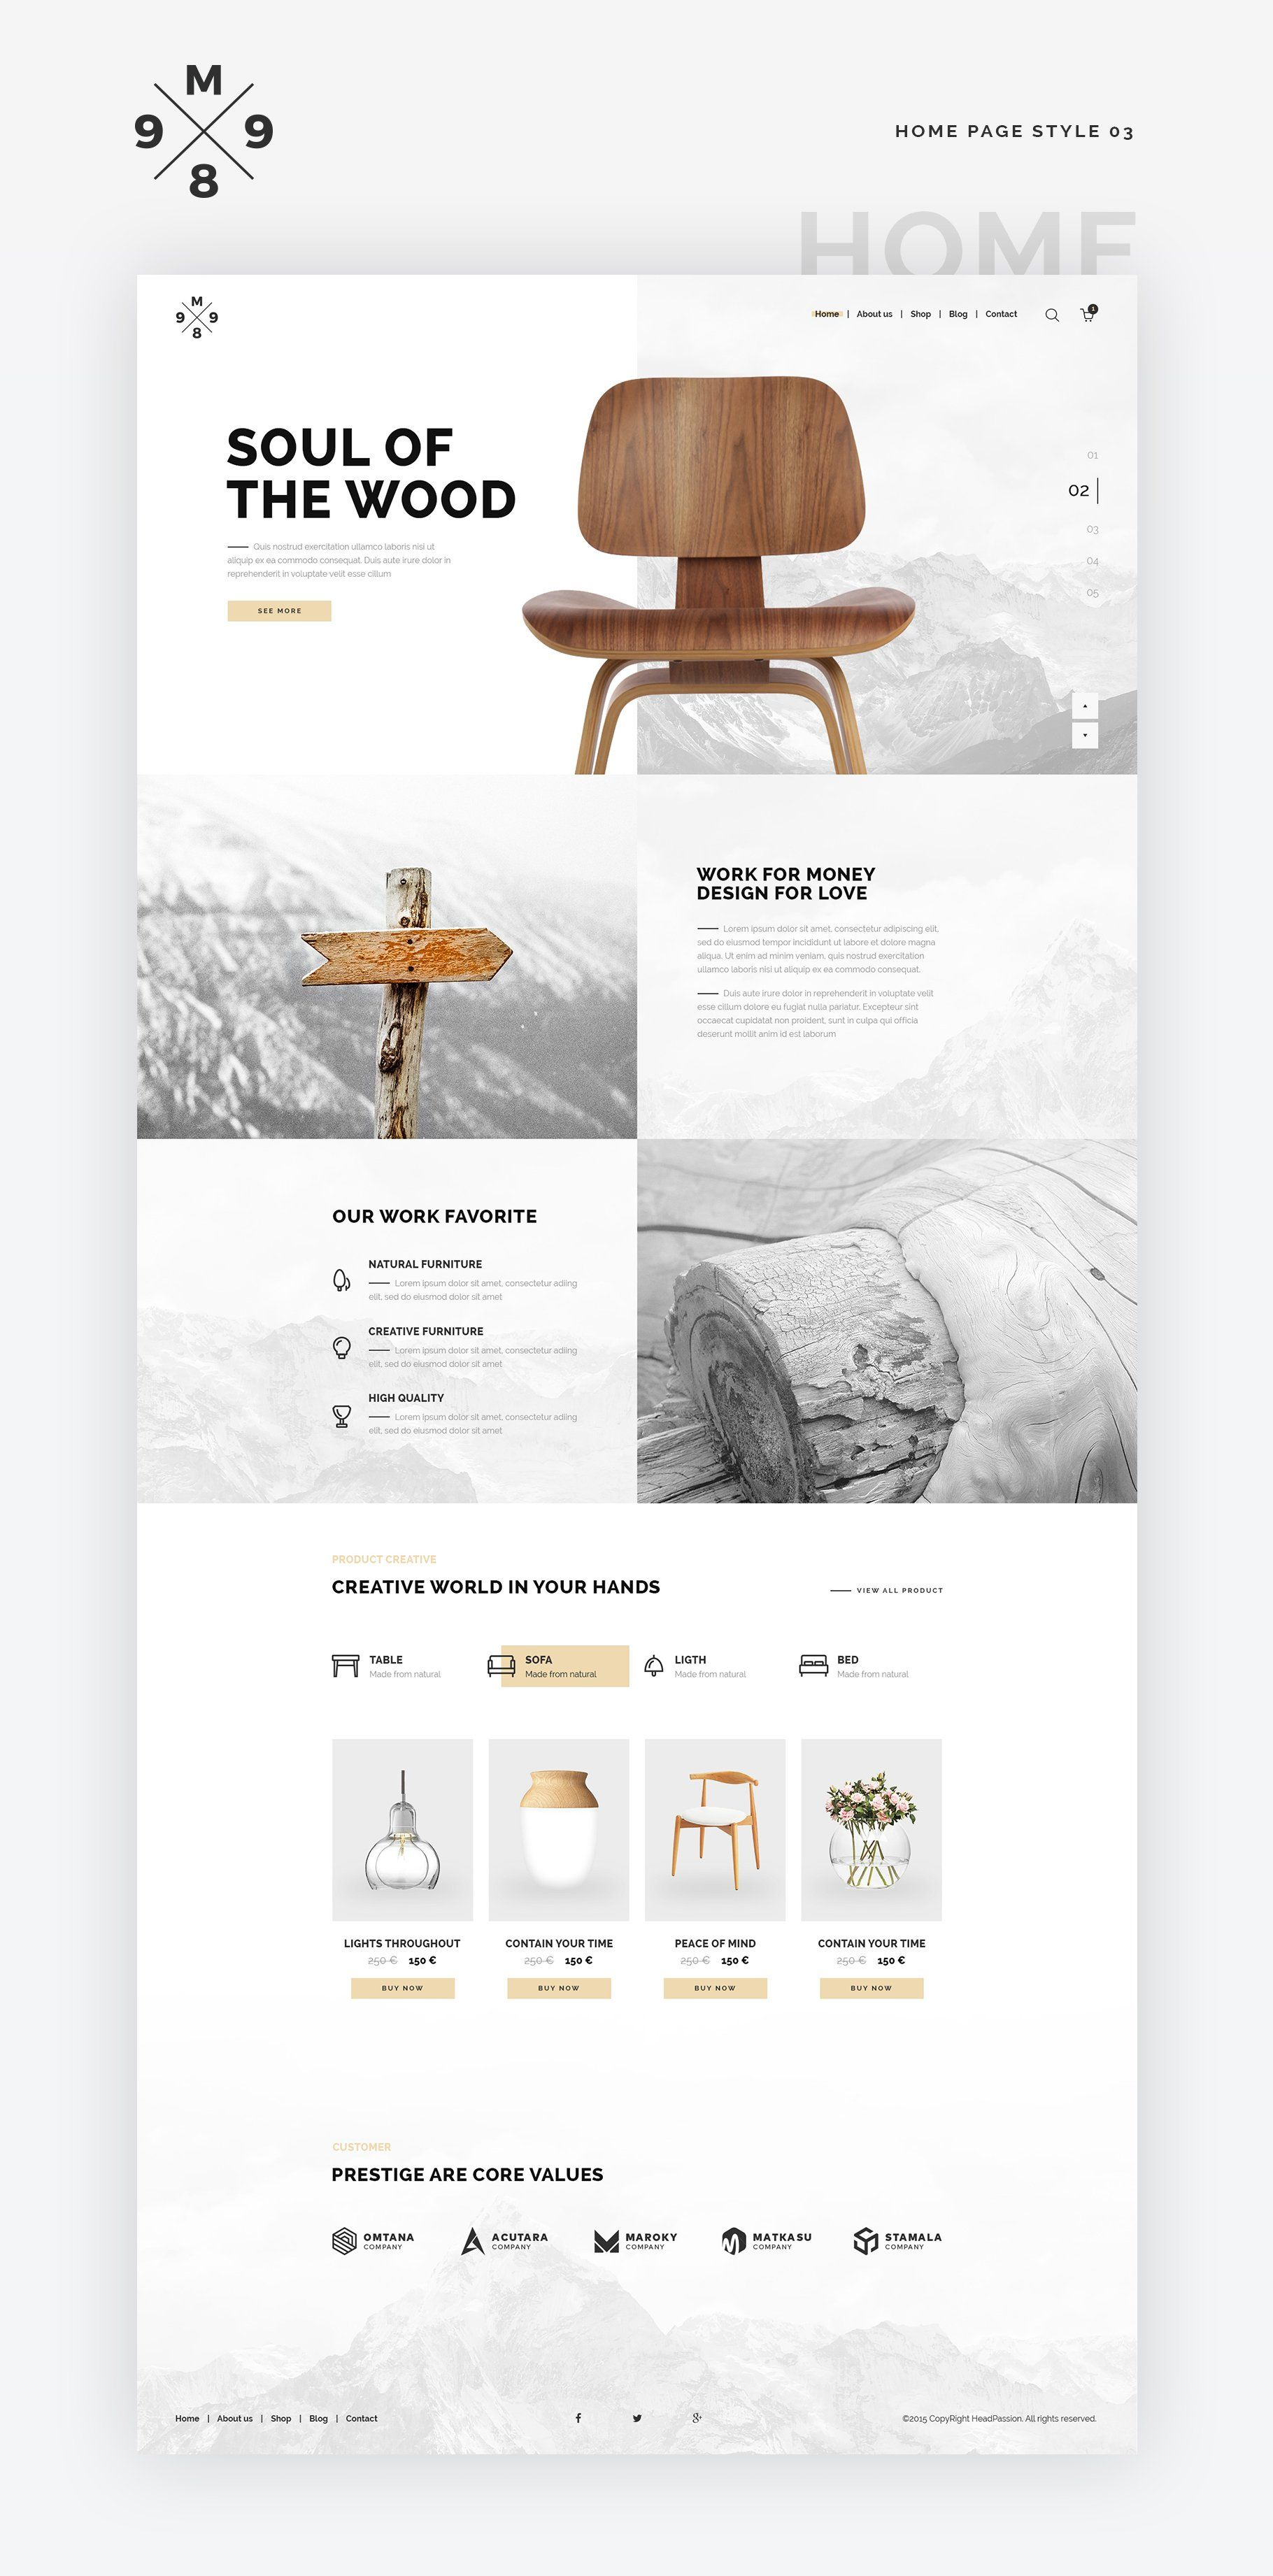 M989 Website Template Design UI Kit by Capi Creative. Minimalist and clean website UI kit and design inspiration. #webdesign #websitedesign #design #guidesign